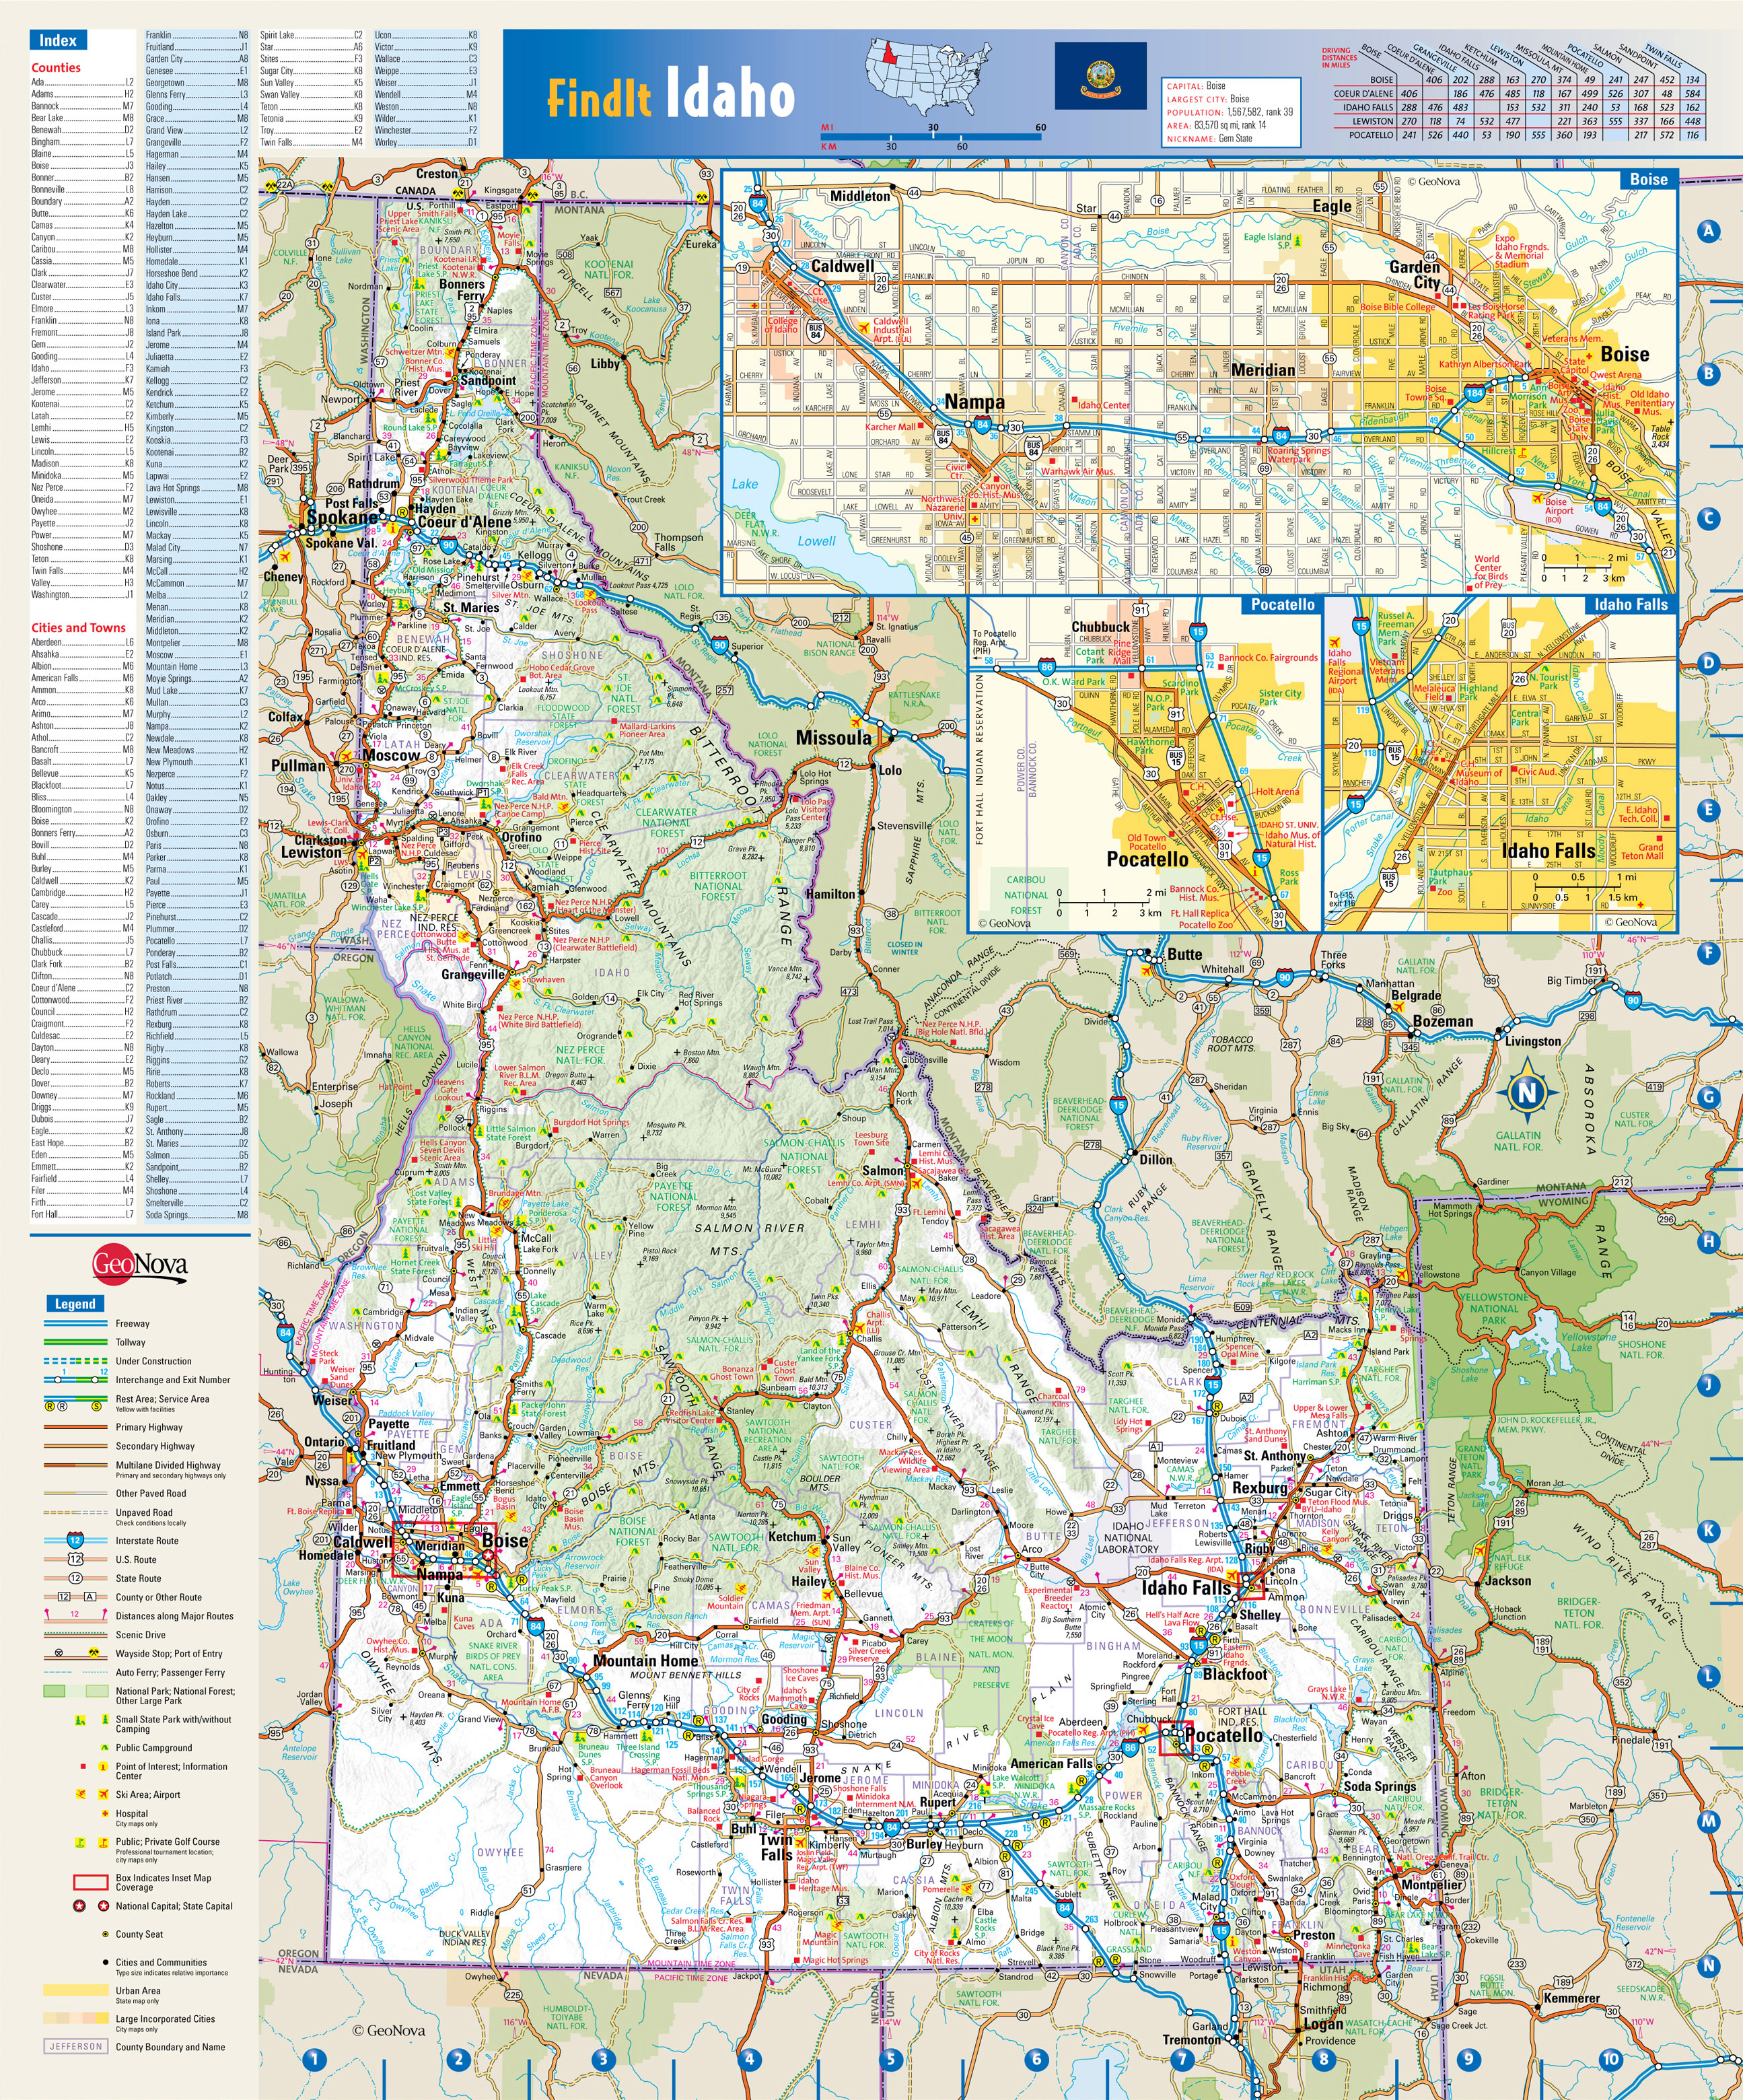 idaho map of cities and towns Large Detailed Roads And Highways Map Of Idaho State With National idaho map of cities and towns